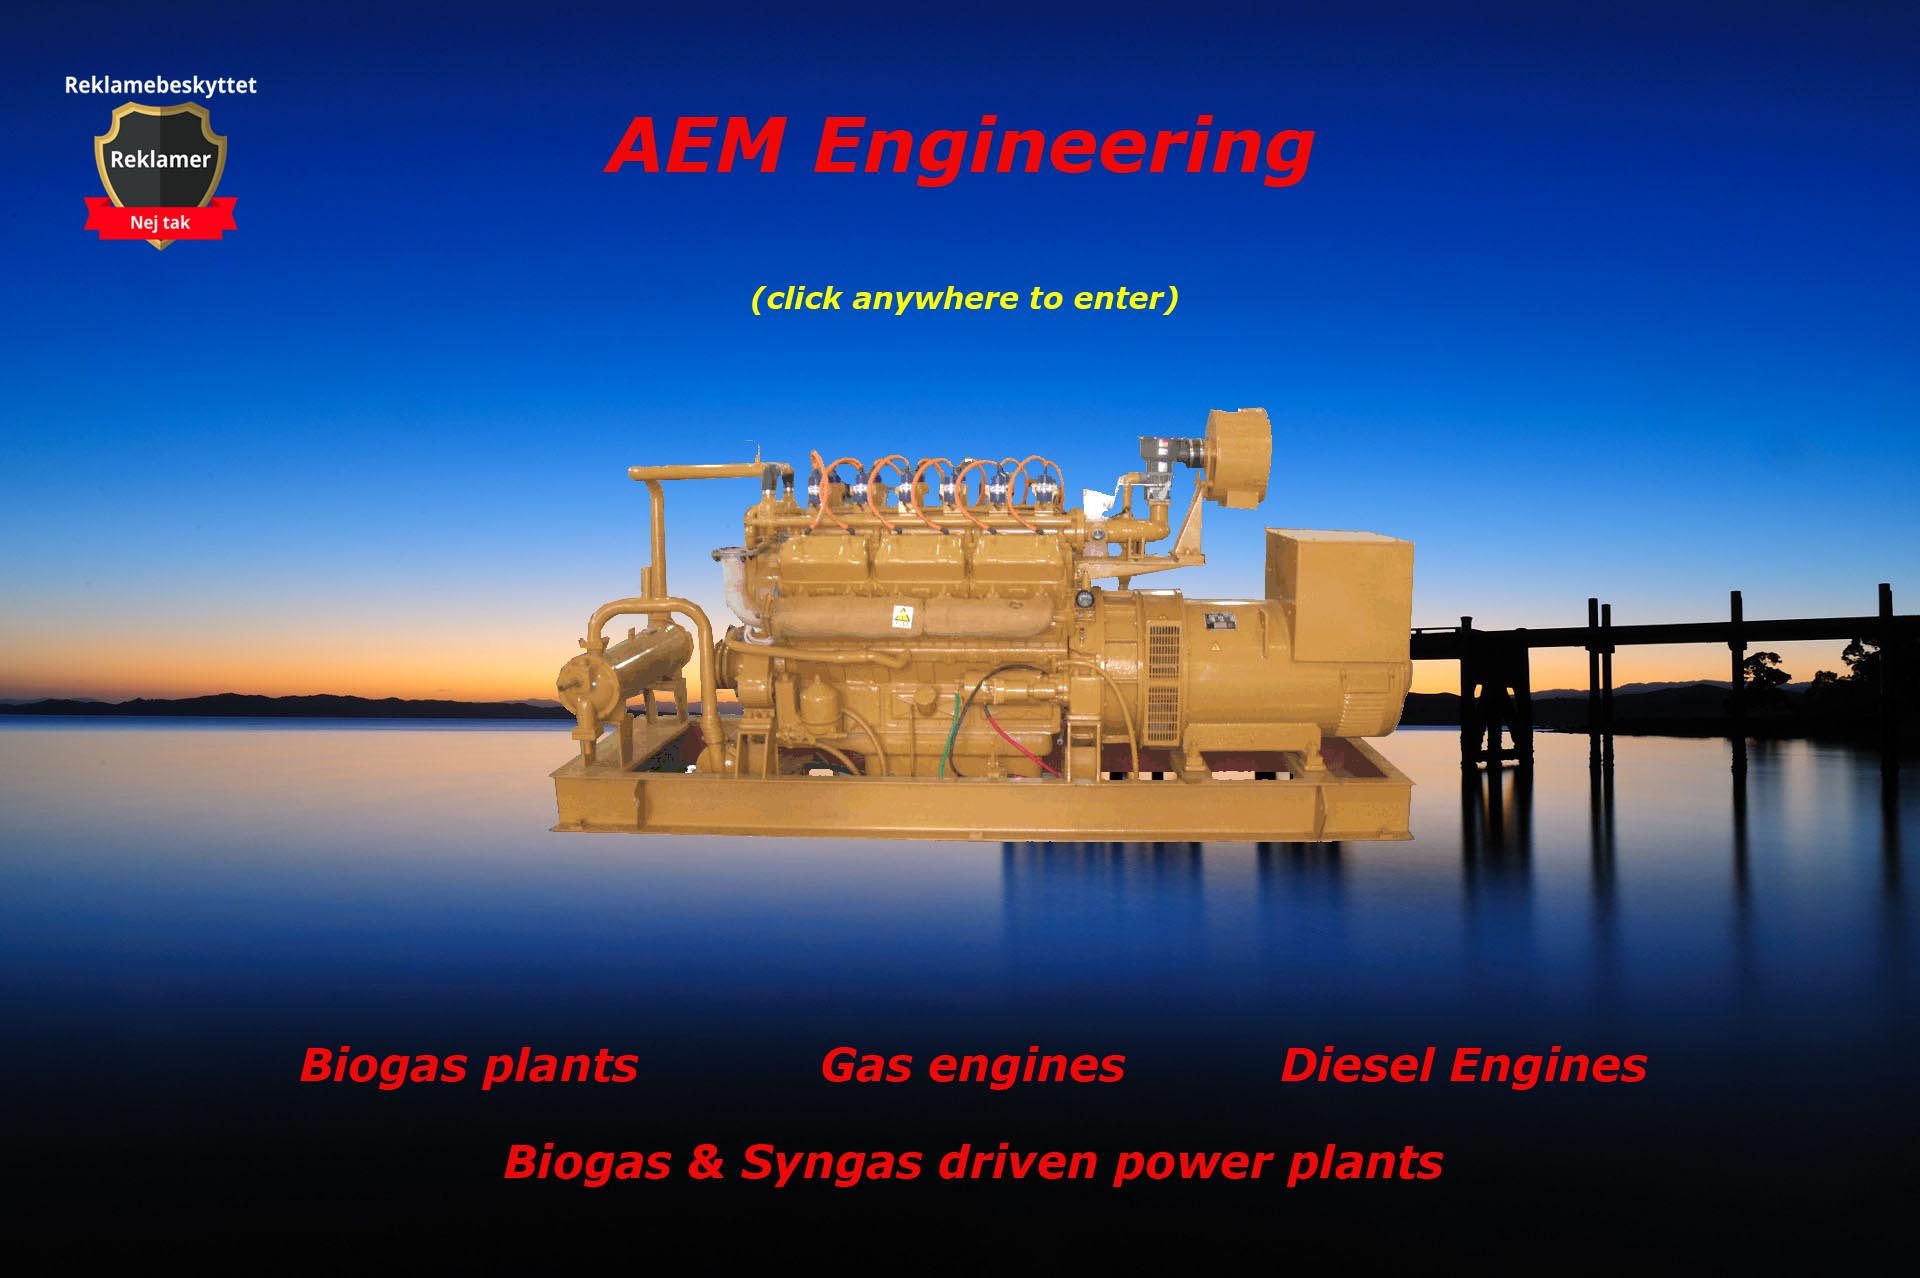 Biogas and gas engines